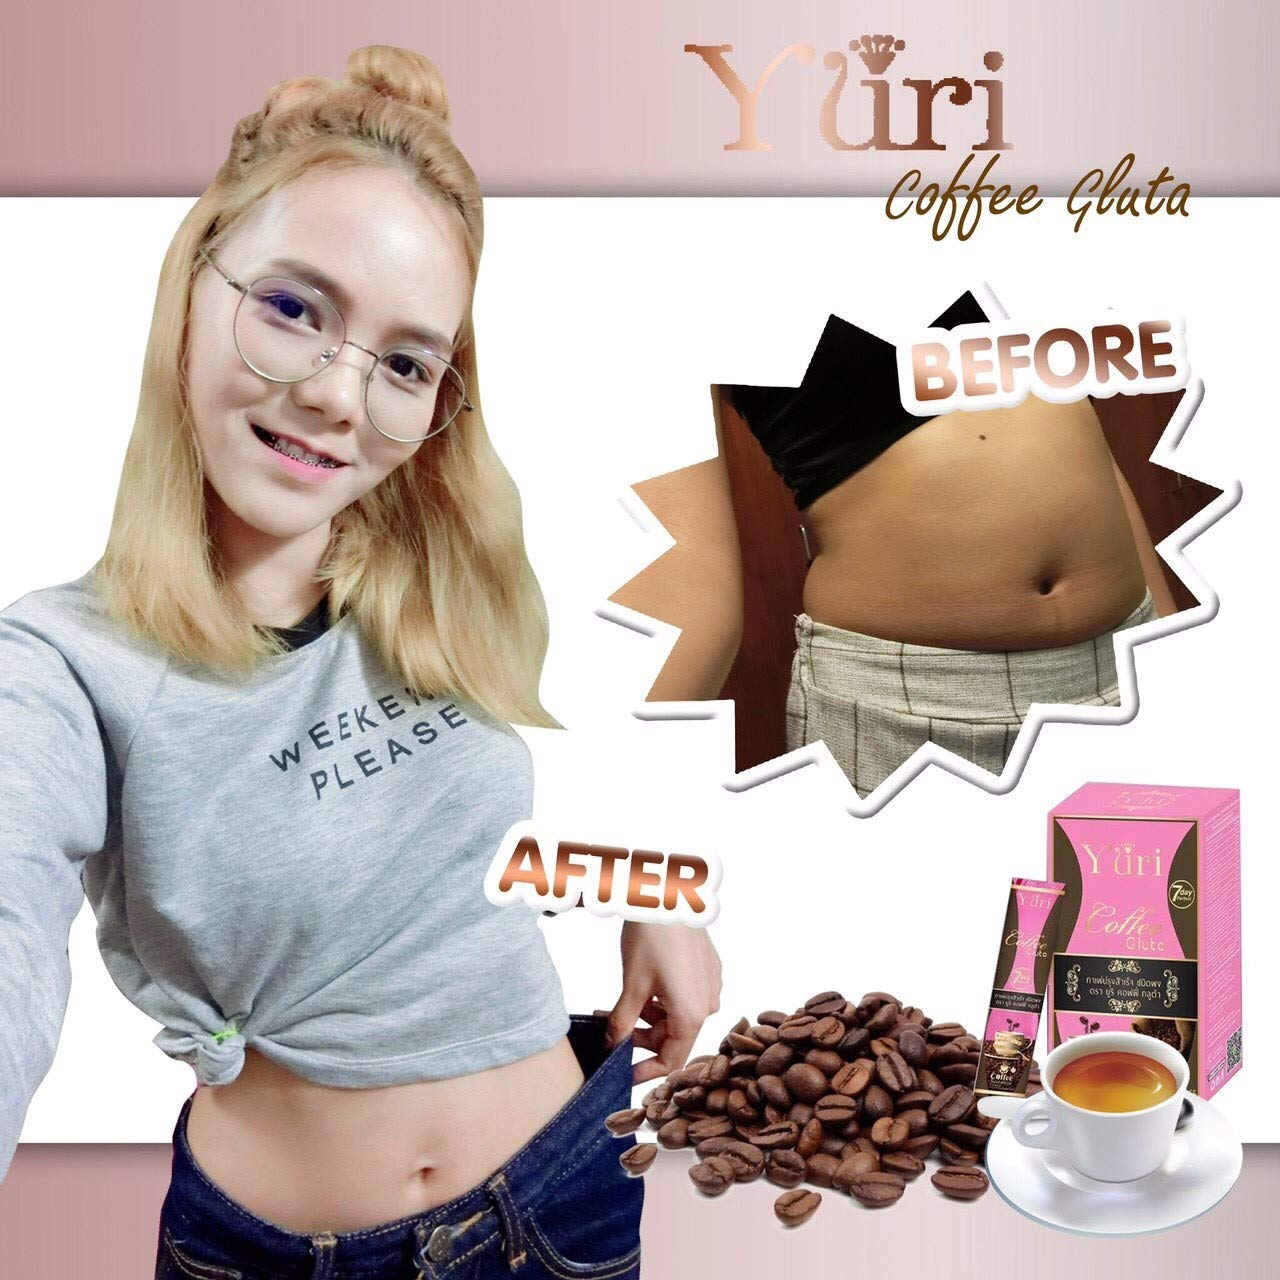 (2 Box.) Coffee Gluta Diet Coffee for Weight Loss & Whitening Skin 7 days perfect (10 pcs.per Box)